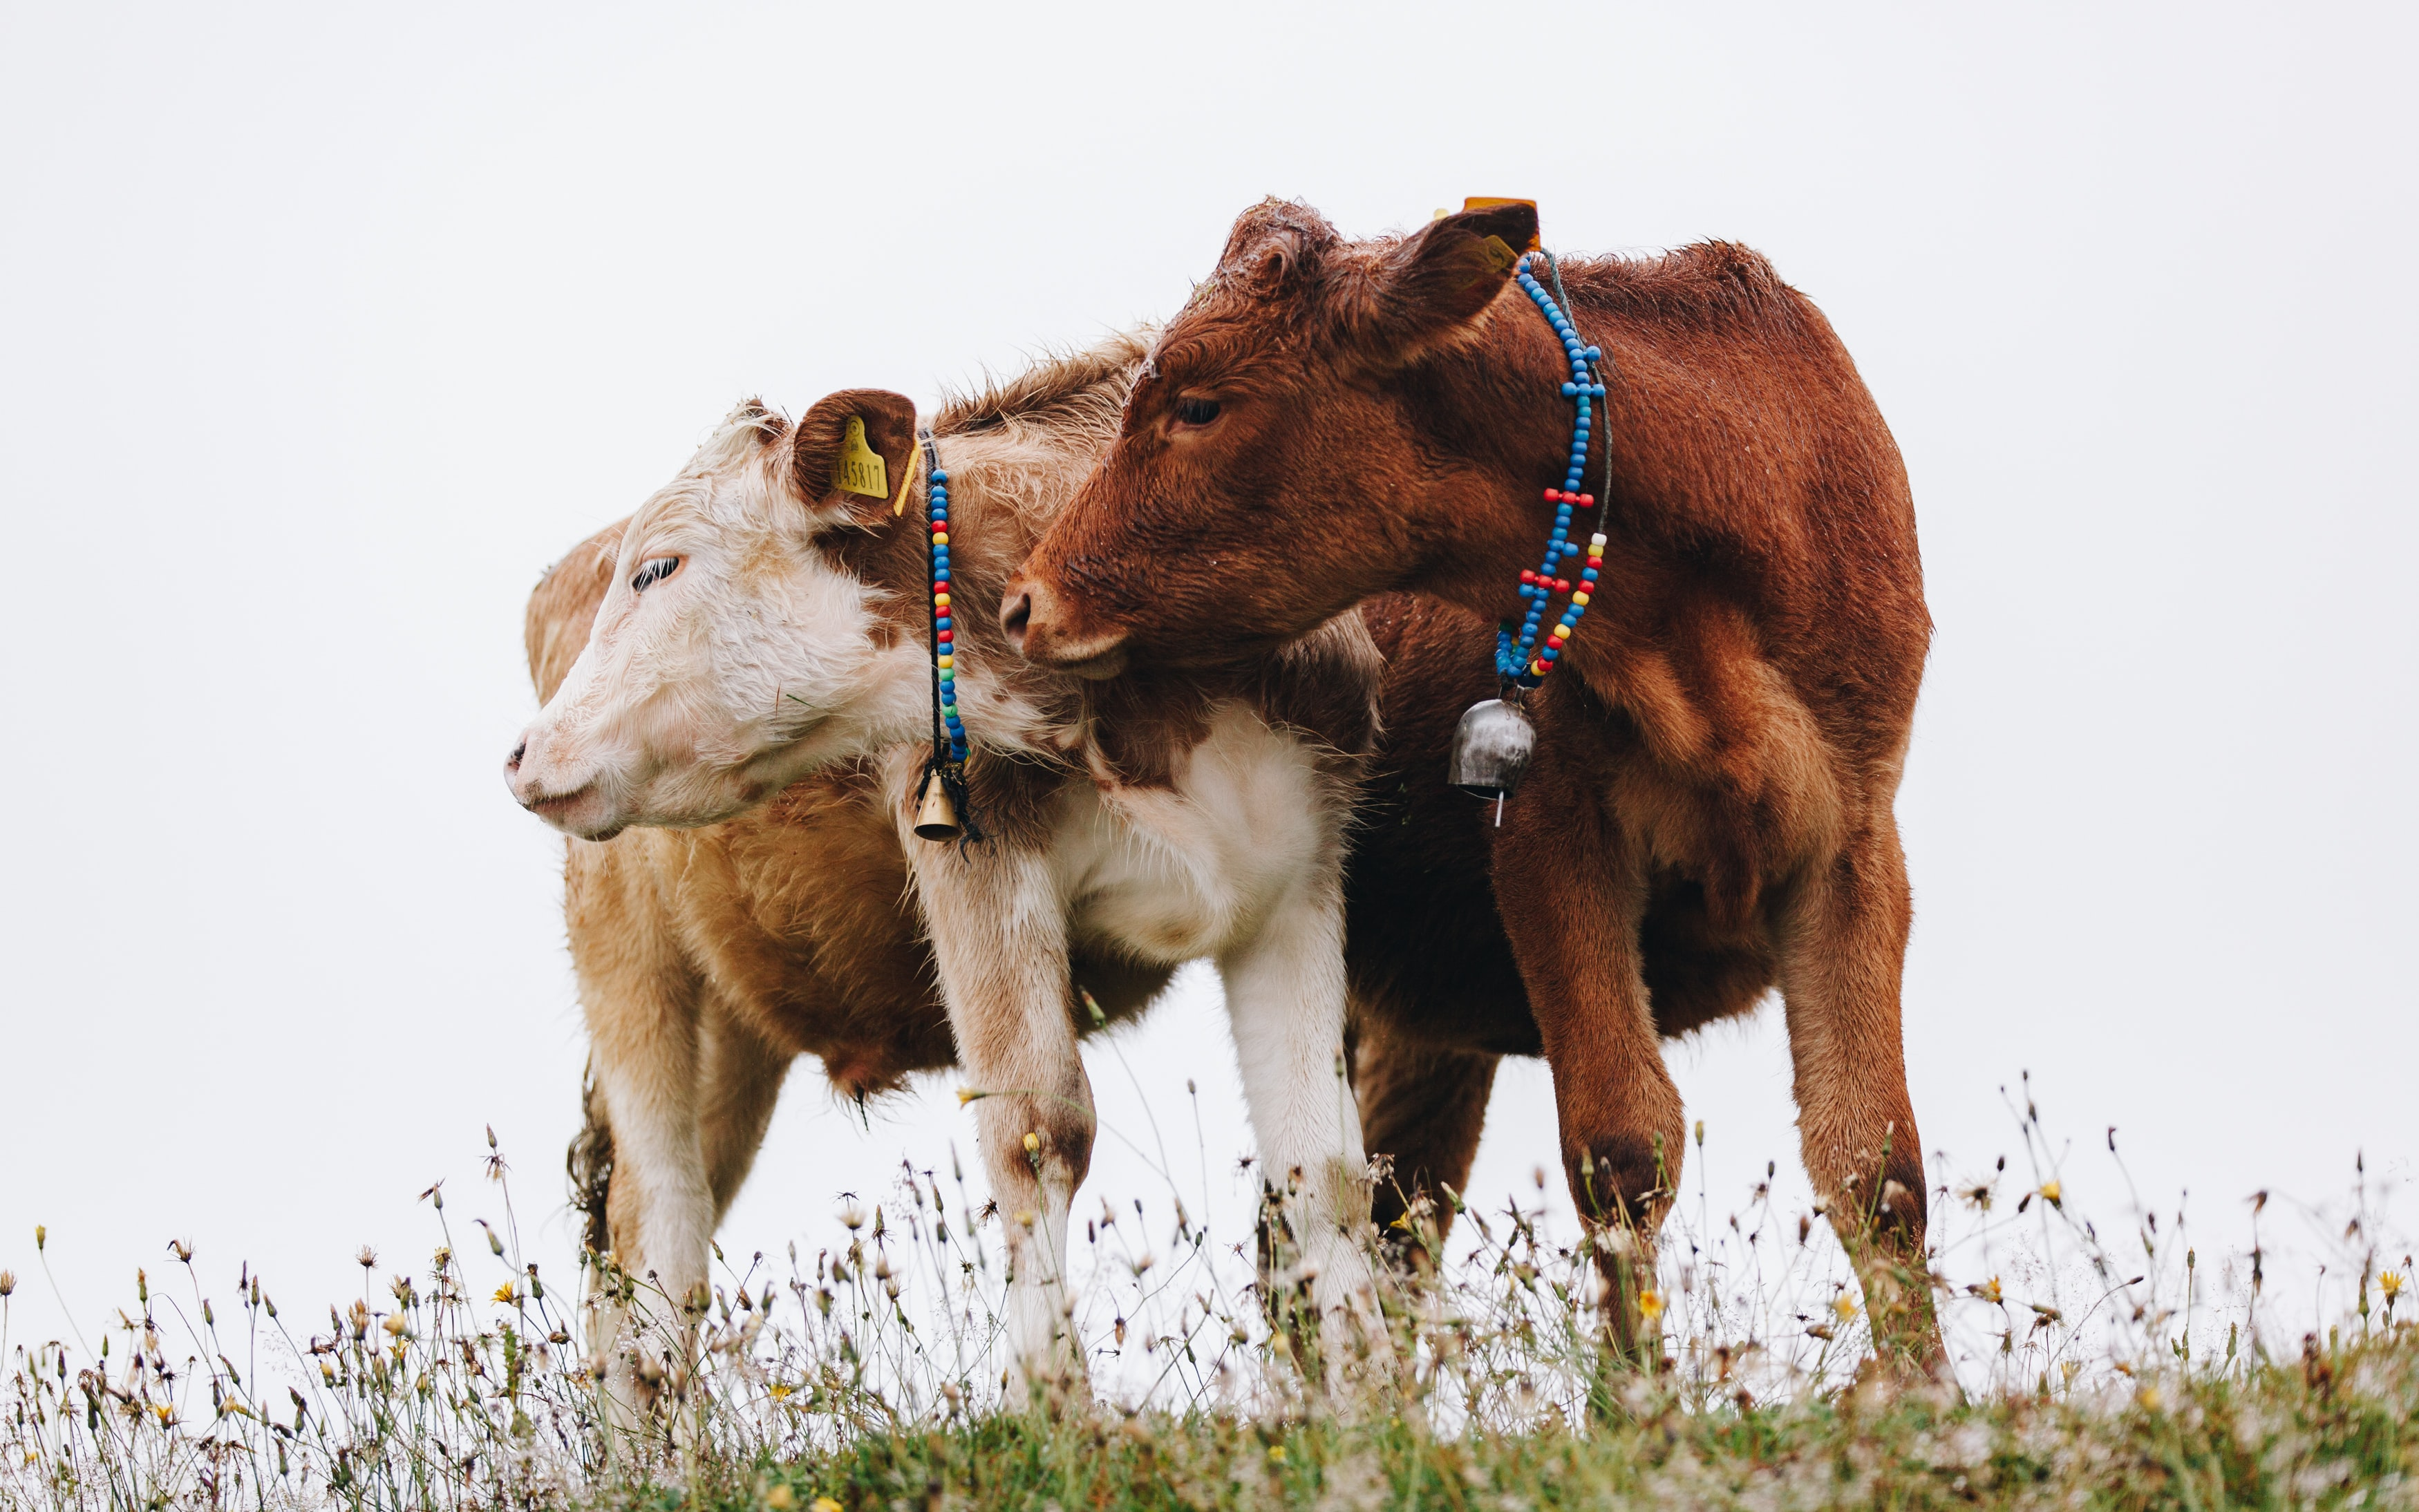 two brown and white cow animal